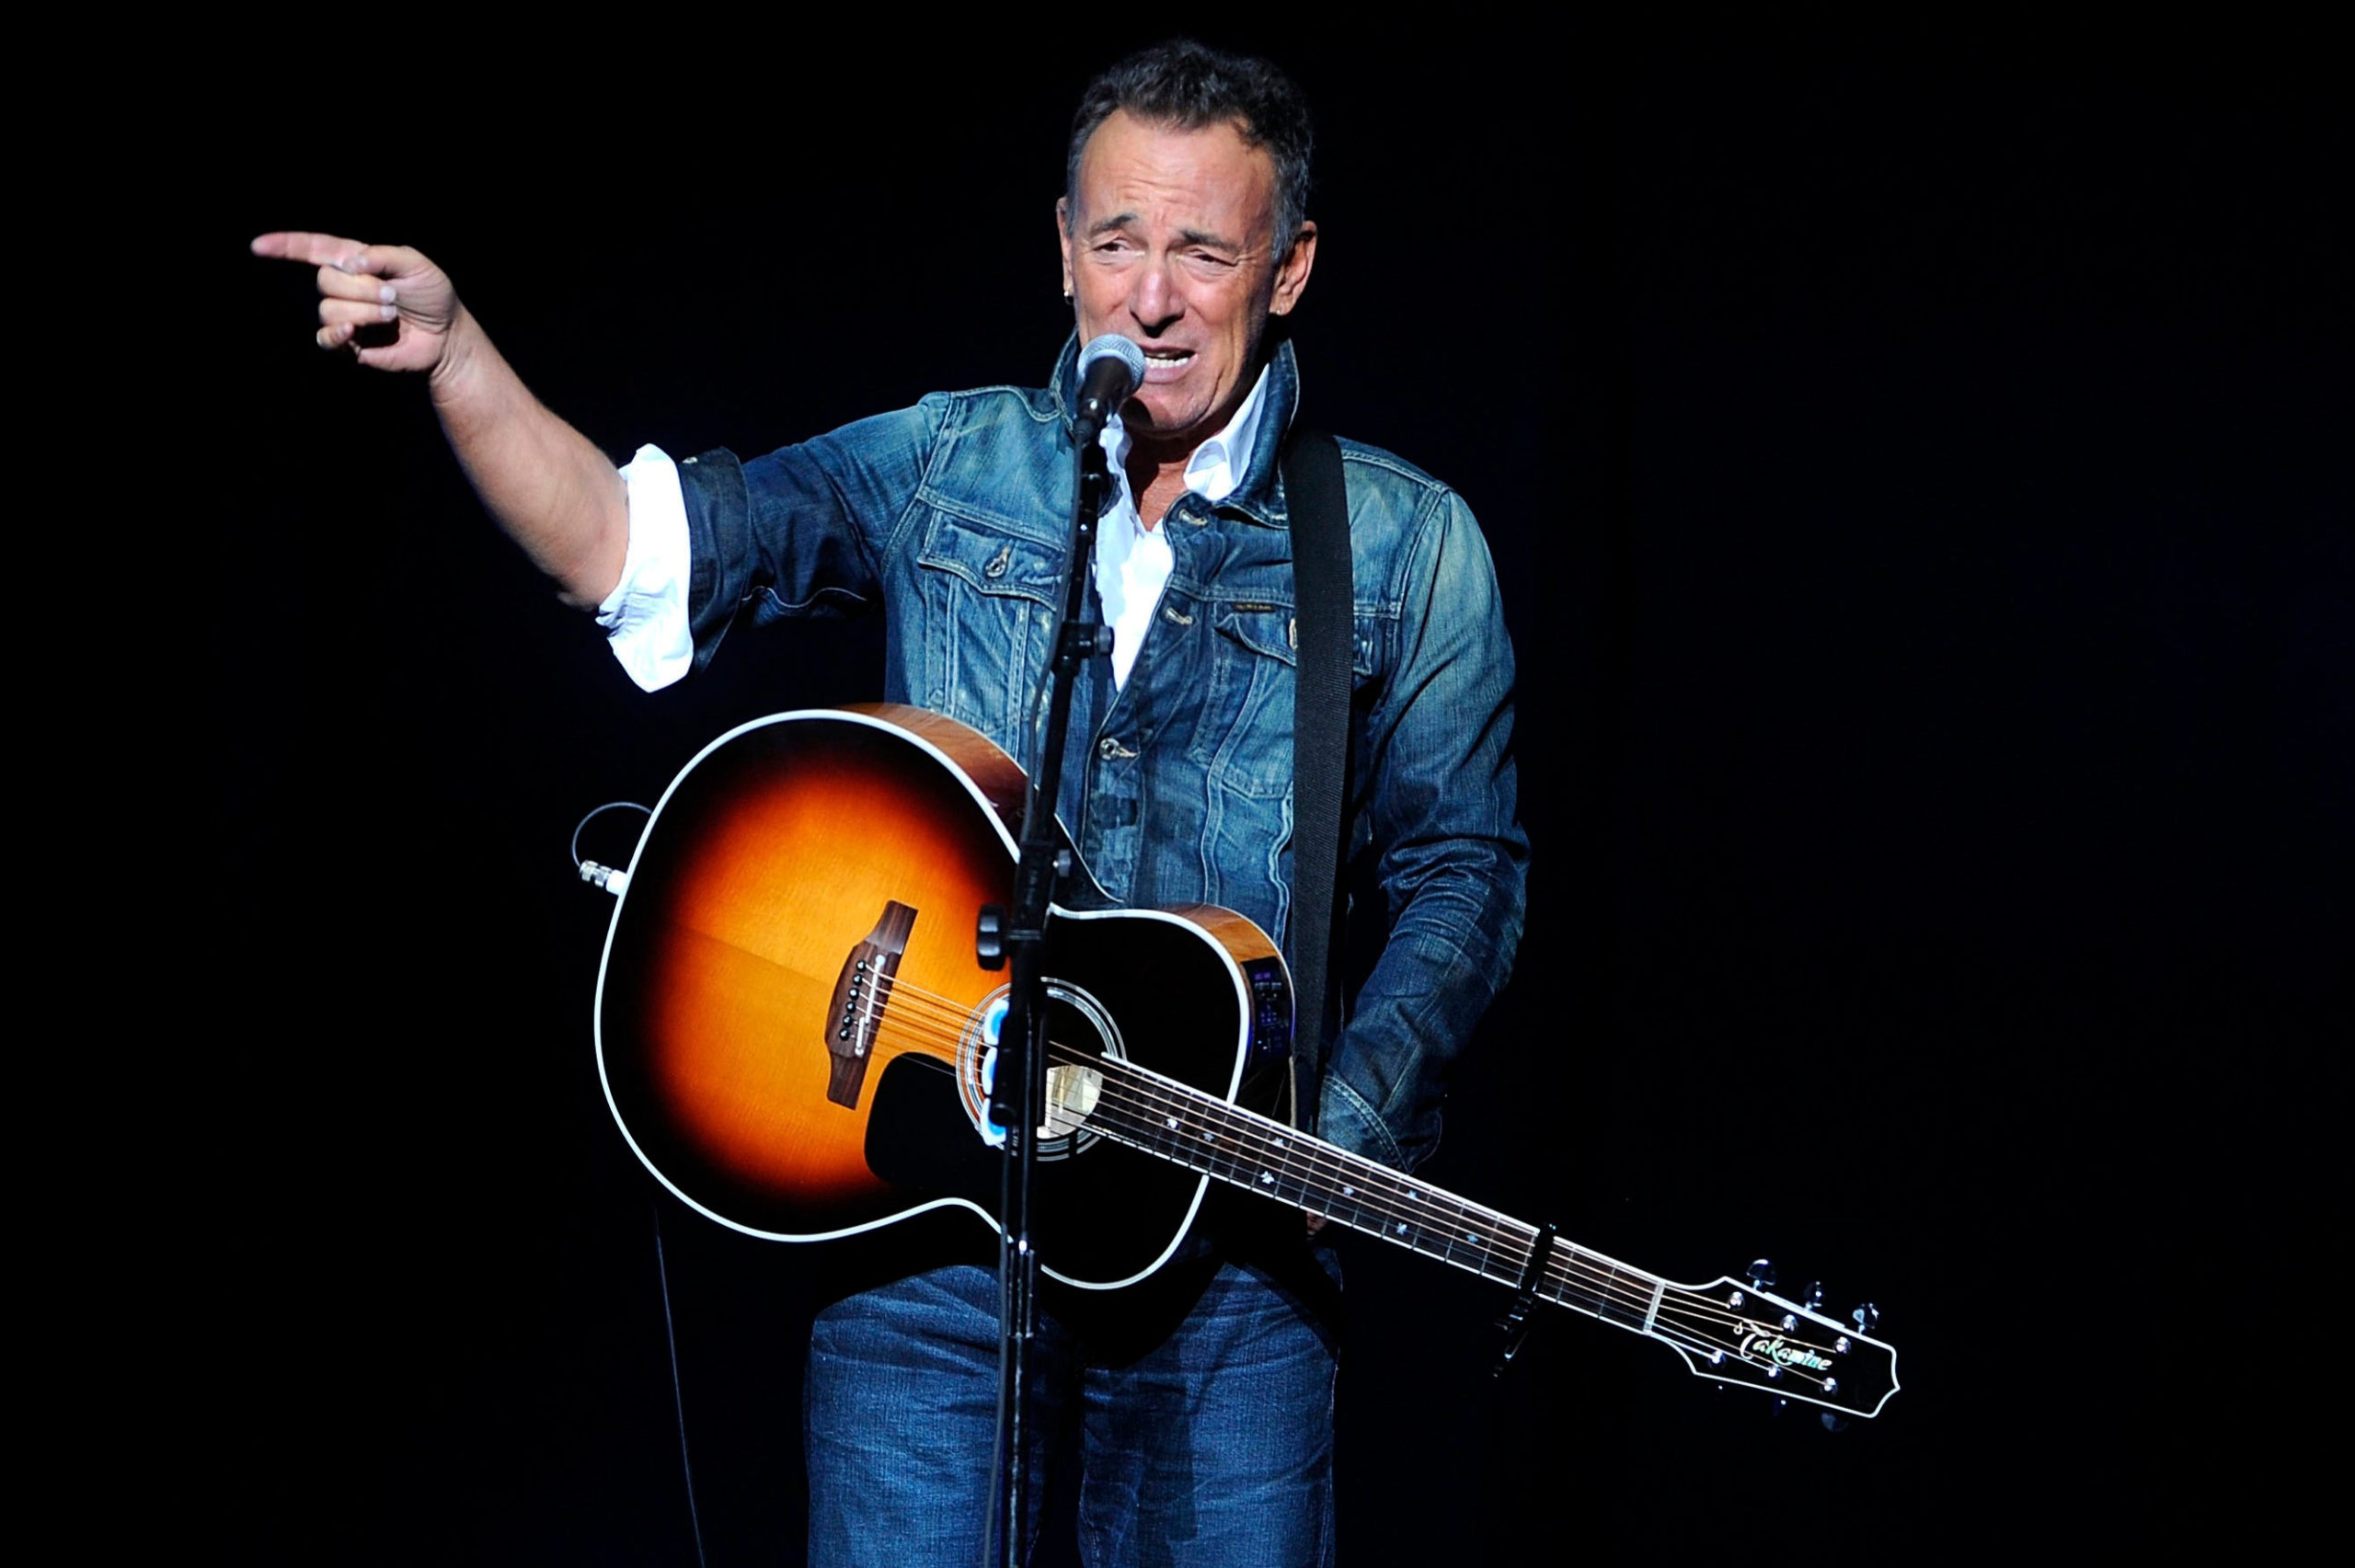 Bruce Springsteen 'drink-drive' blow for Jeep